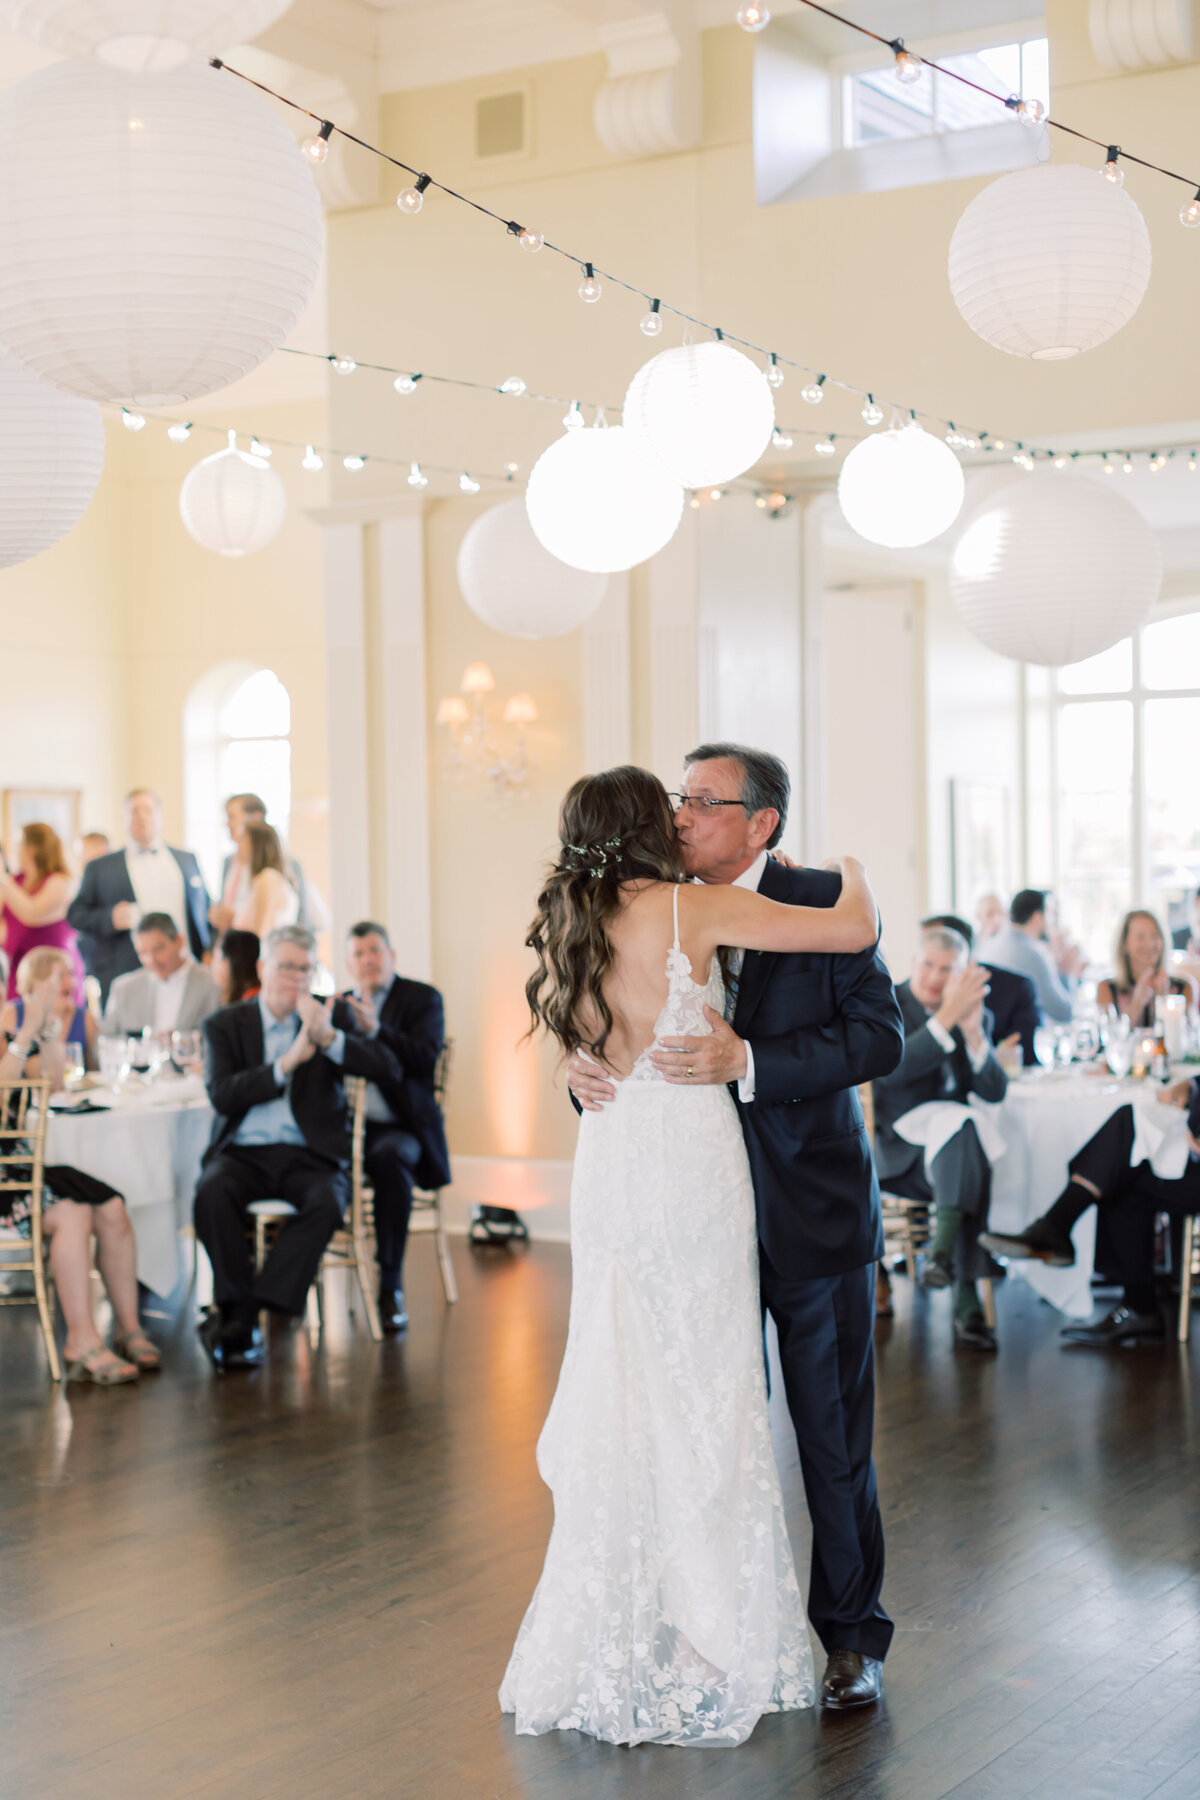 TiffaneyChildsPhotography-ChicagoWeddingPhotographer-Chloe+Jon-HinsdaleCountryClubWedding-Reception-147